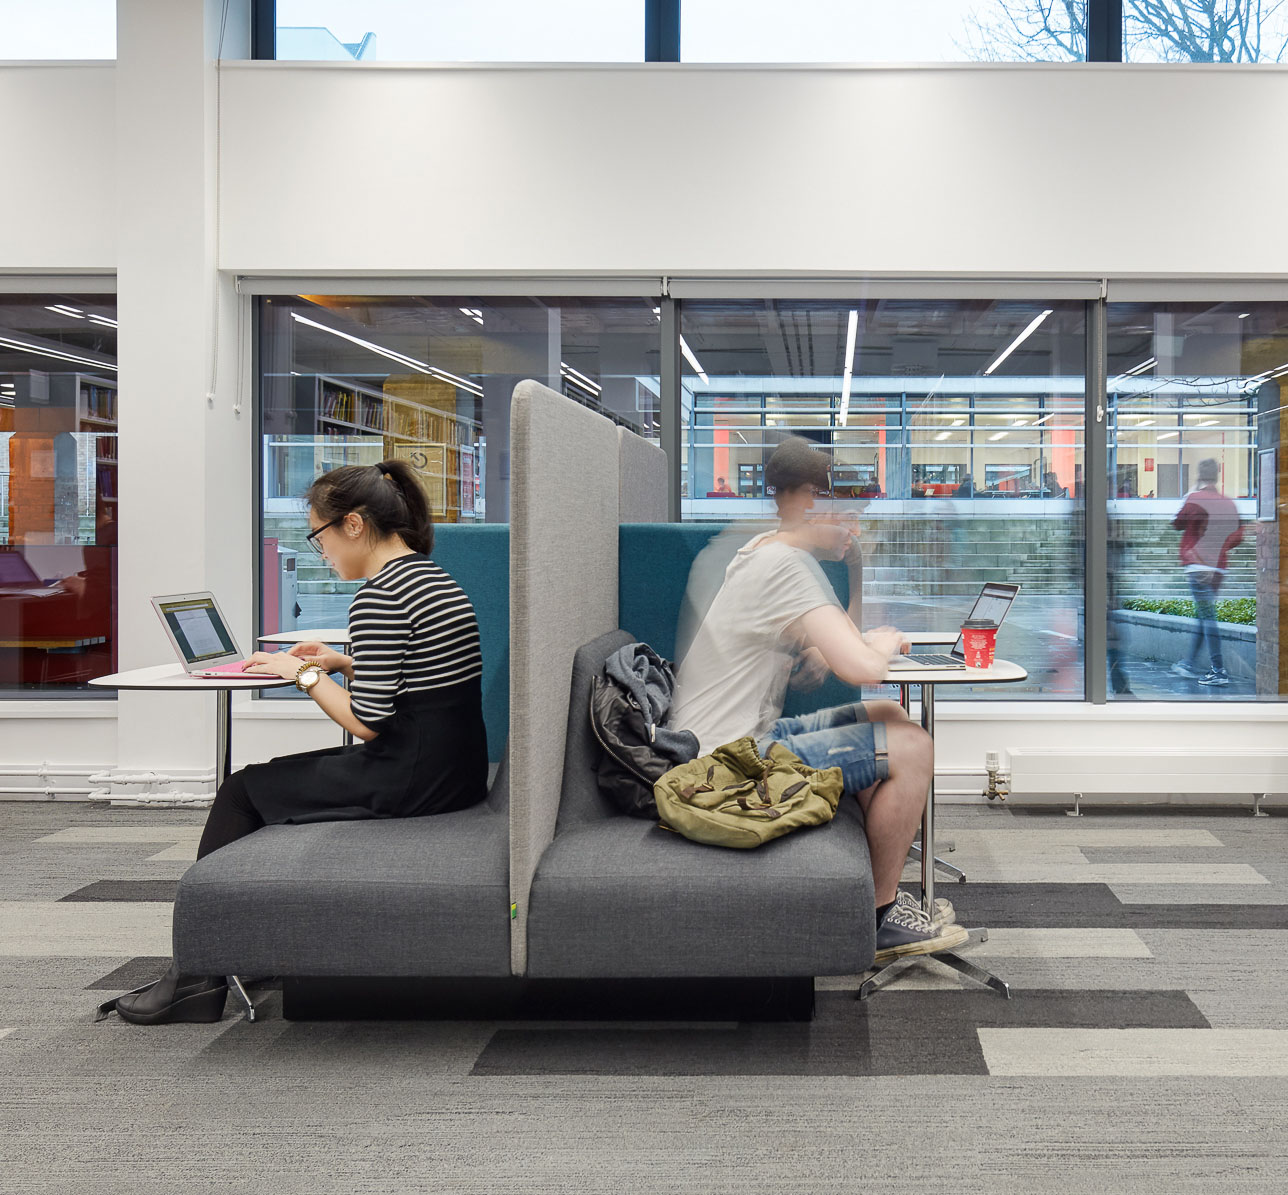 Lancaster University Library by Sheppard Robson